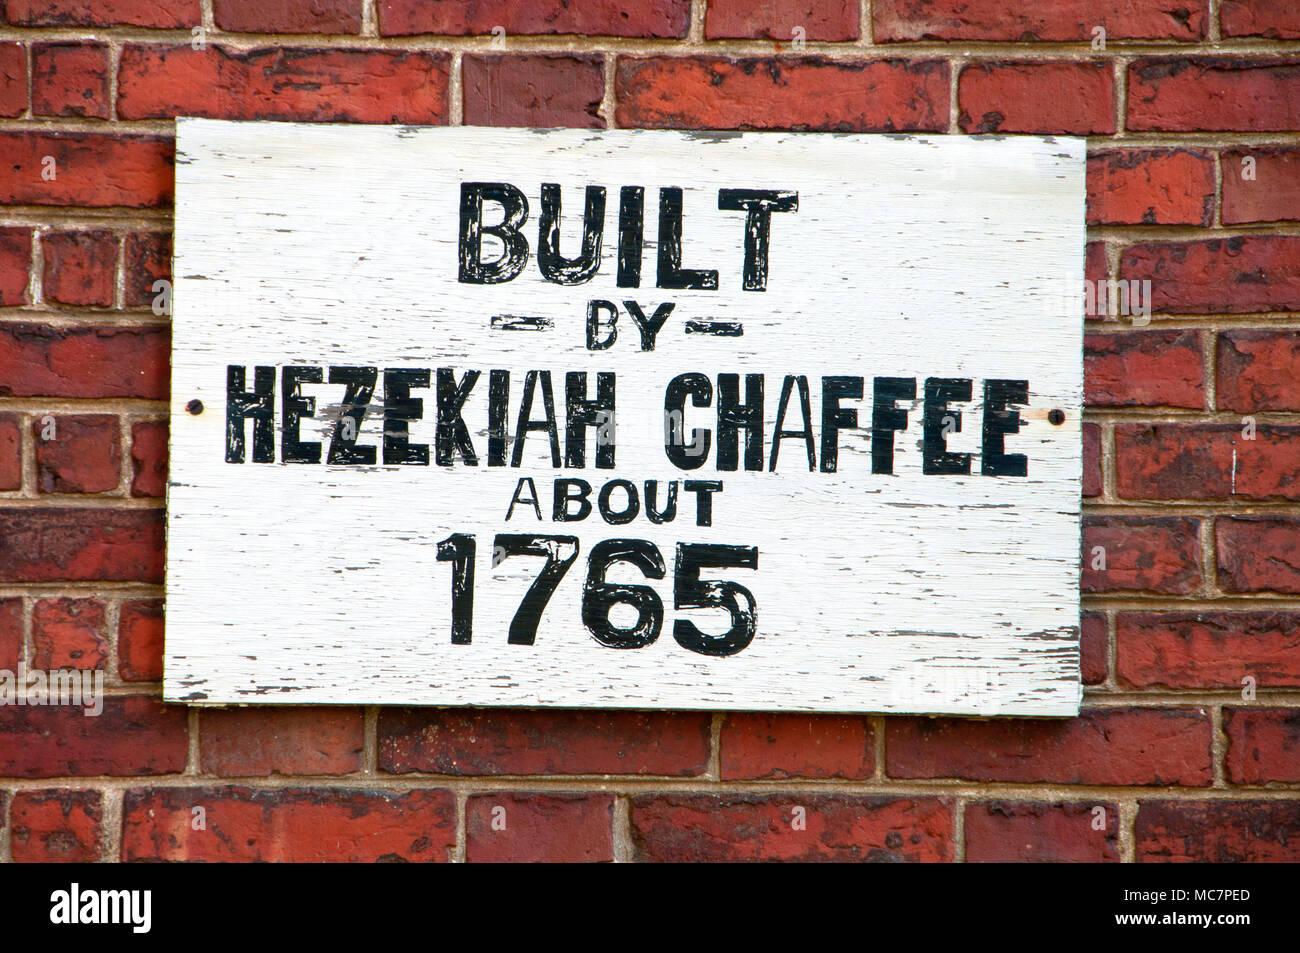 Chaffee House sign, Windsor Historical Society, Windsor, Connecticut - Stock Image